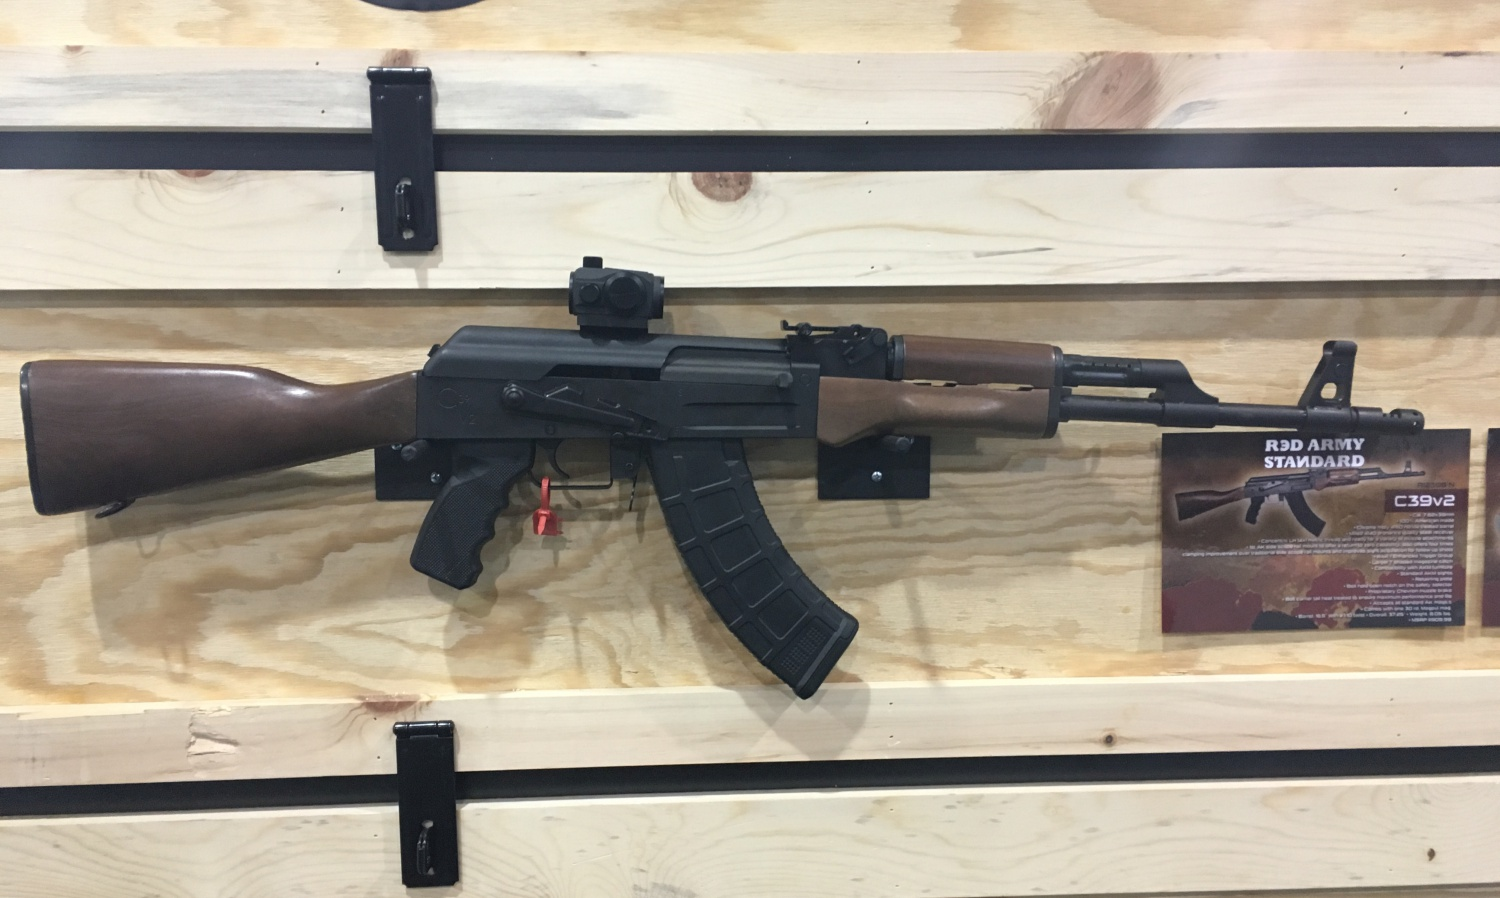 Century Arms C39v2 Red Army Standard Shot 2017 The